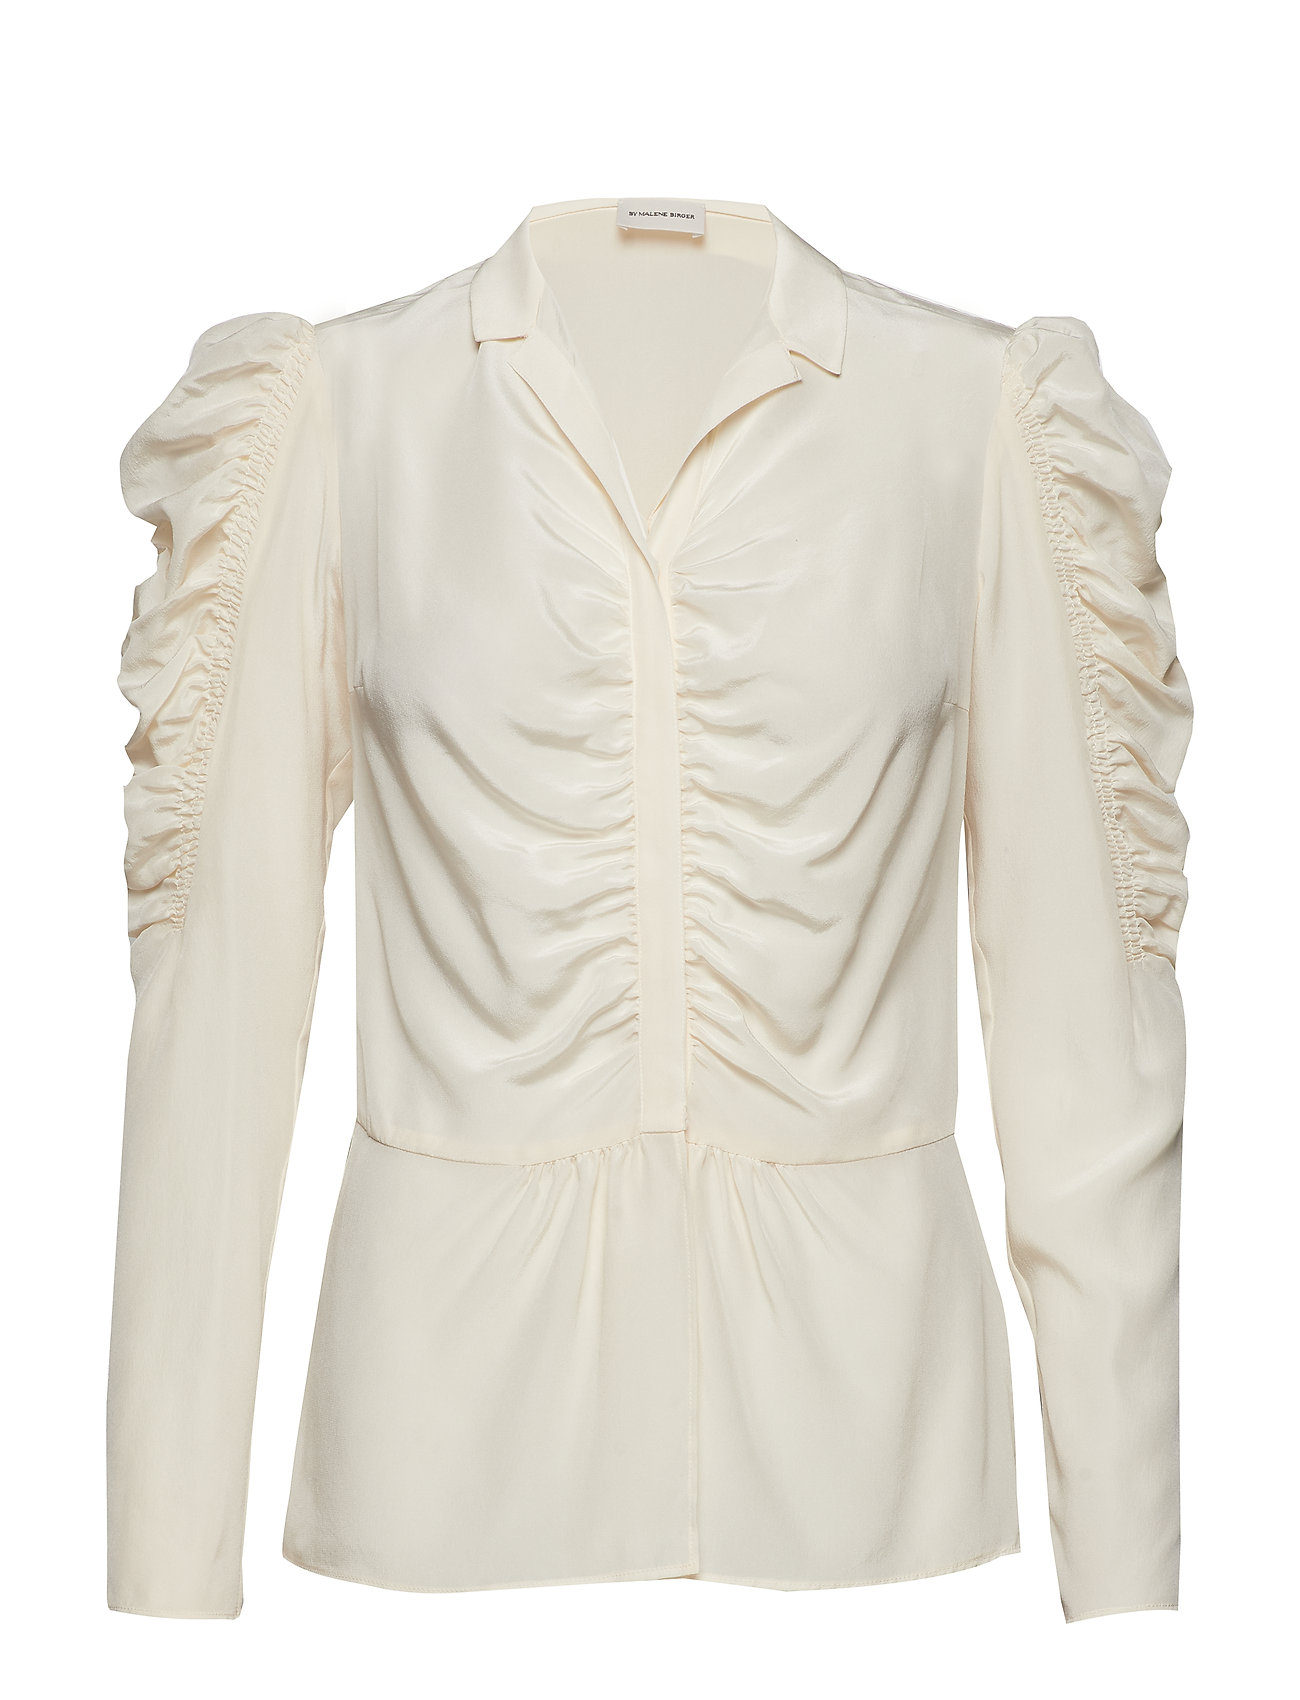 By Malene Birger BLO1007S91 - CREAM